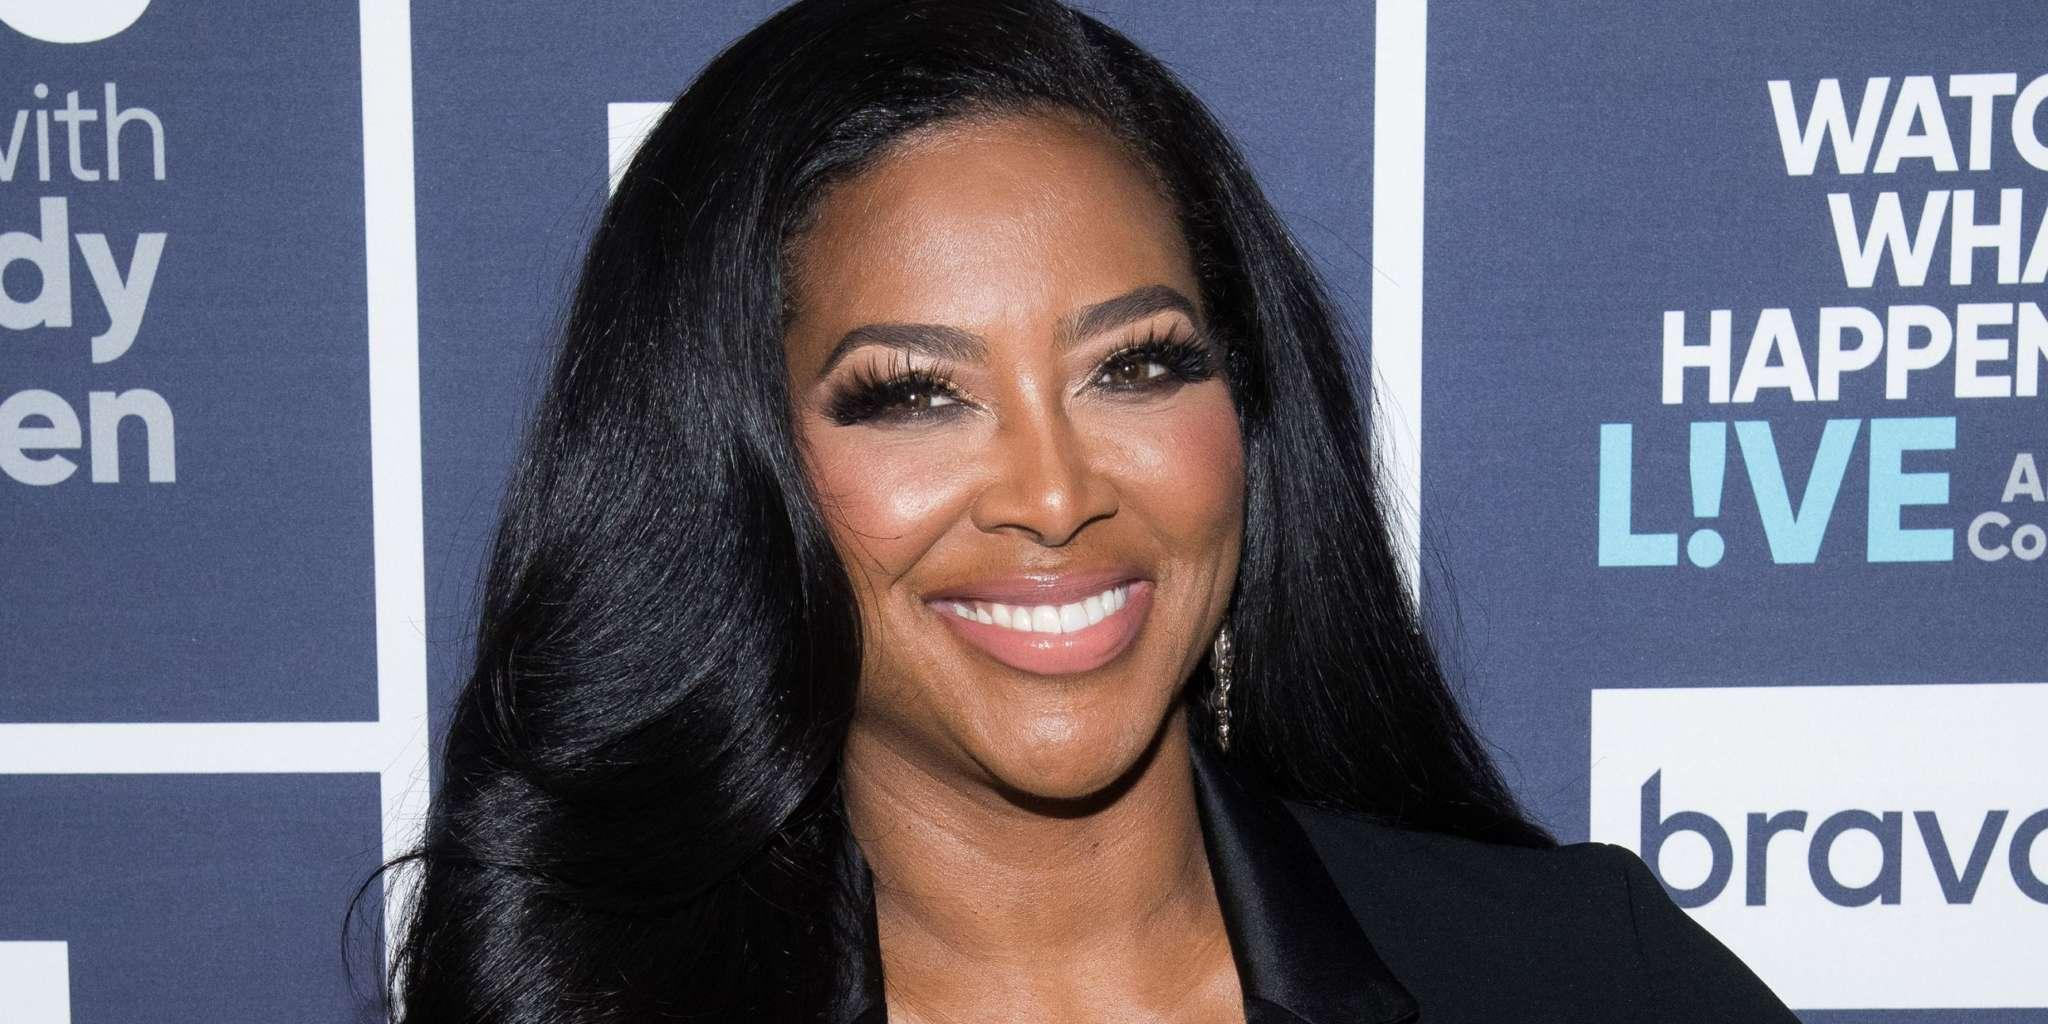 Kenya Moore Advises Fans To Vote - Here's Her Message